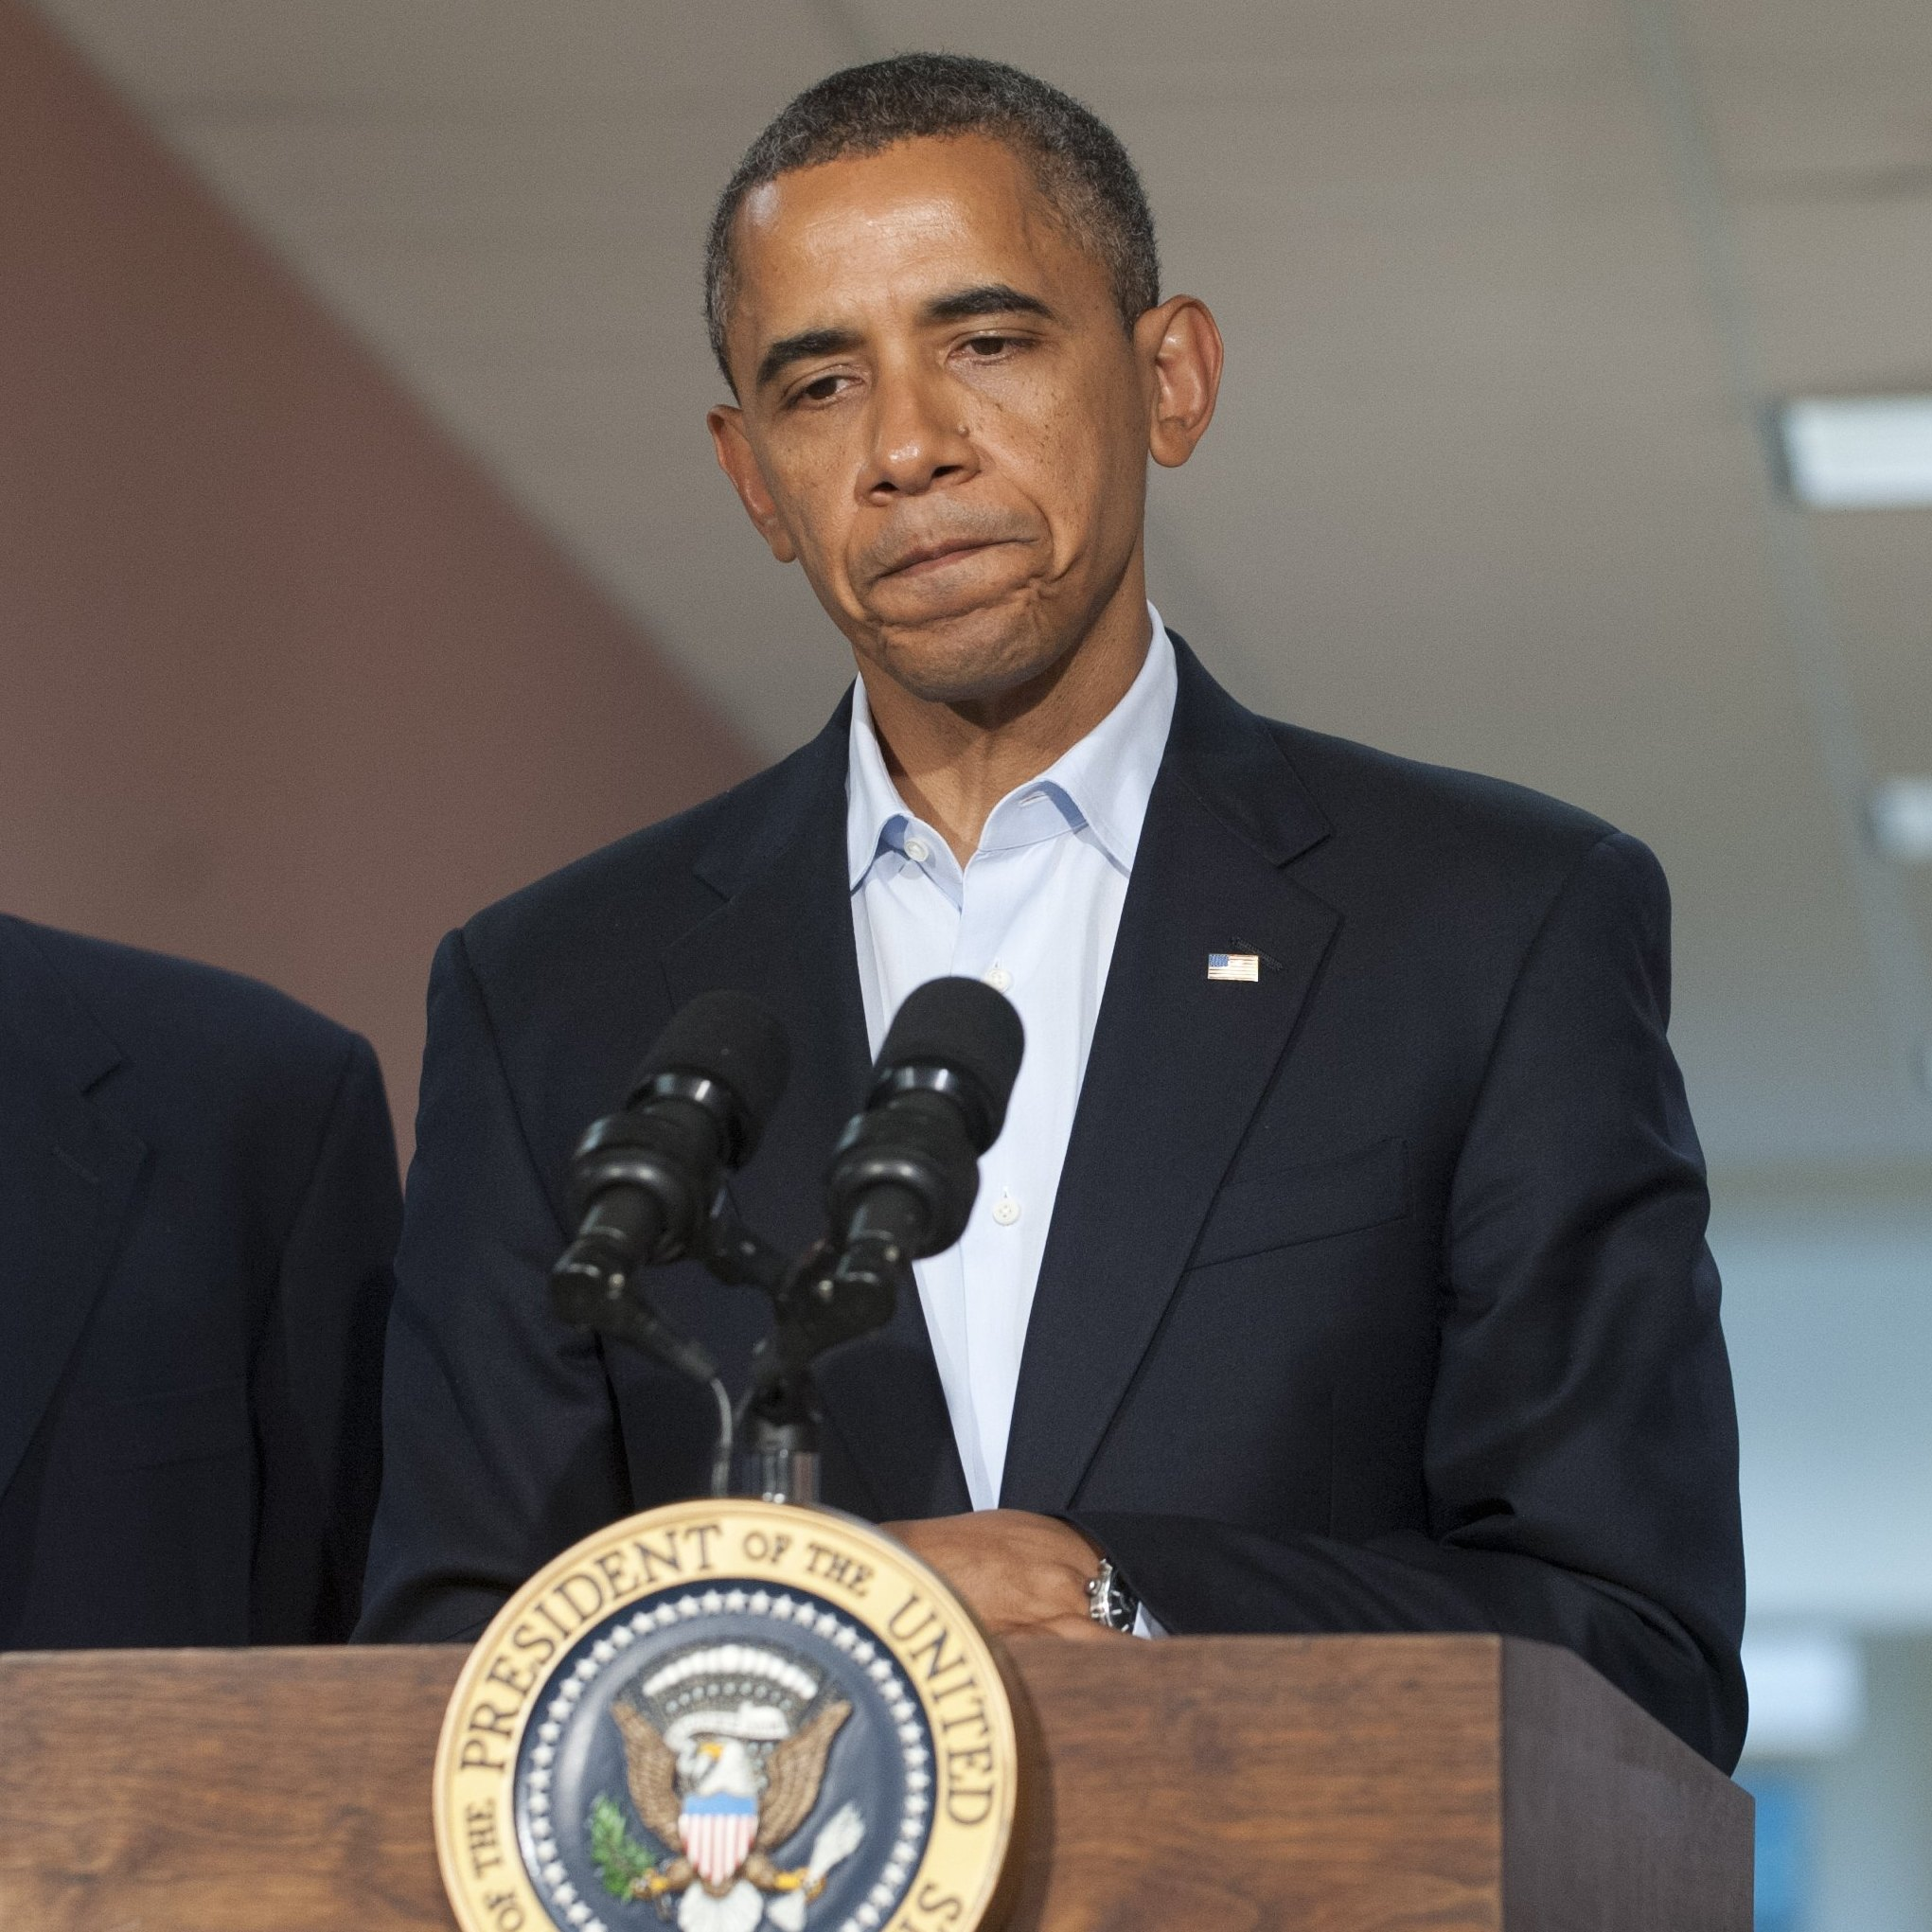 President Obama speaks alongside Colorado Sen. Mark Udall and Colorado Gov. John Hickenlooper (right) at the University of Colorado Hospital in Aurora on Sunday, following a visit with victims and family members.